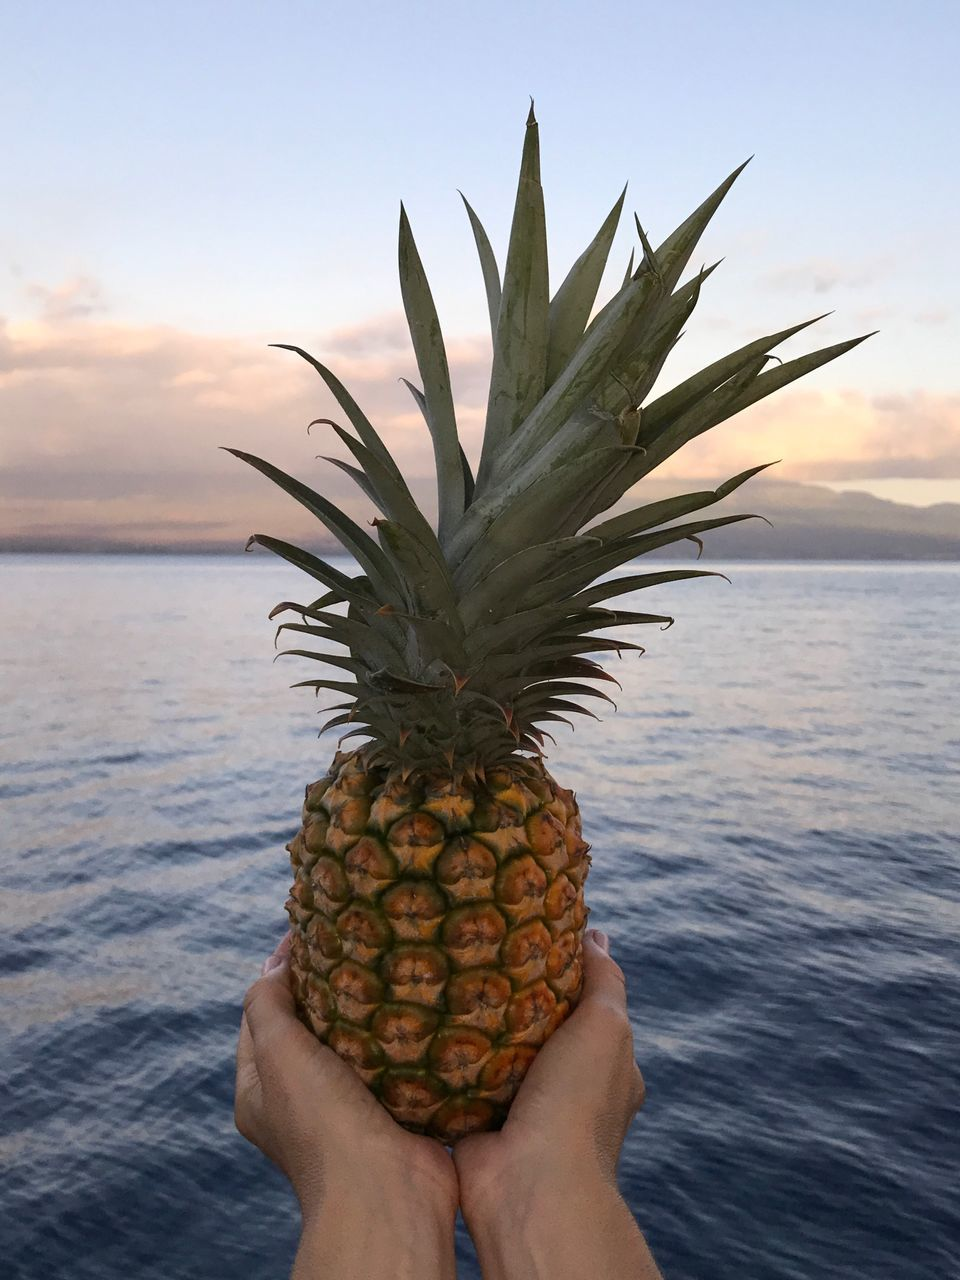 Cropped Hand Of Woman Holding Pineapple Against Sea During Sunset